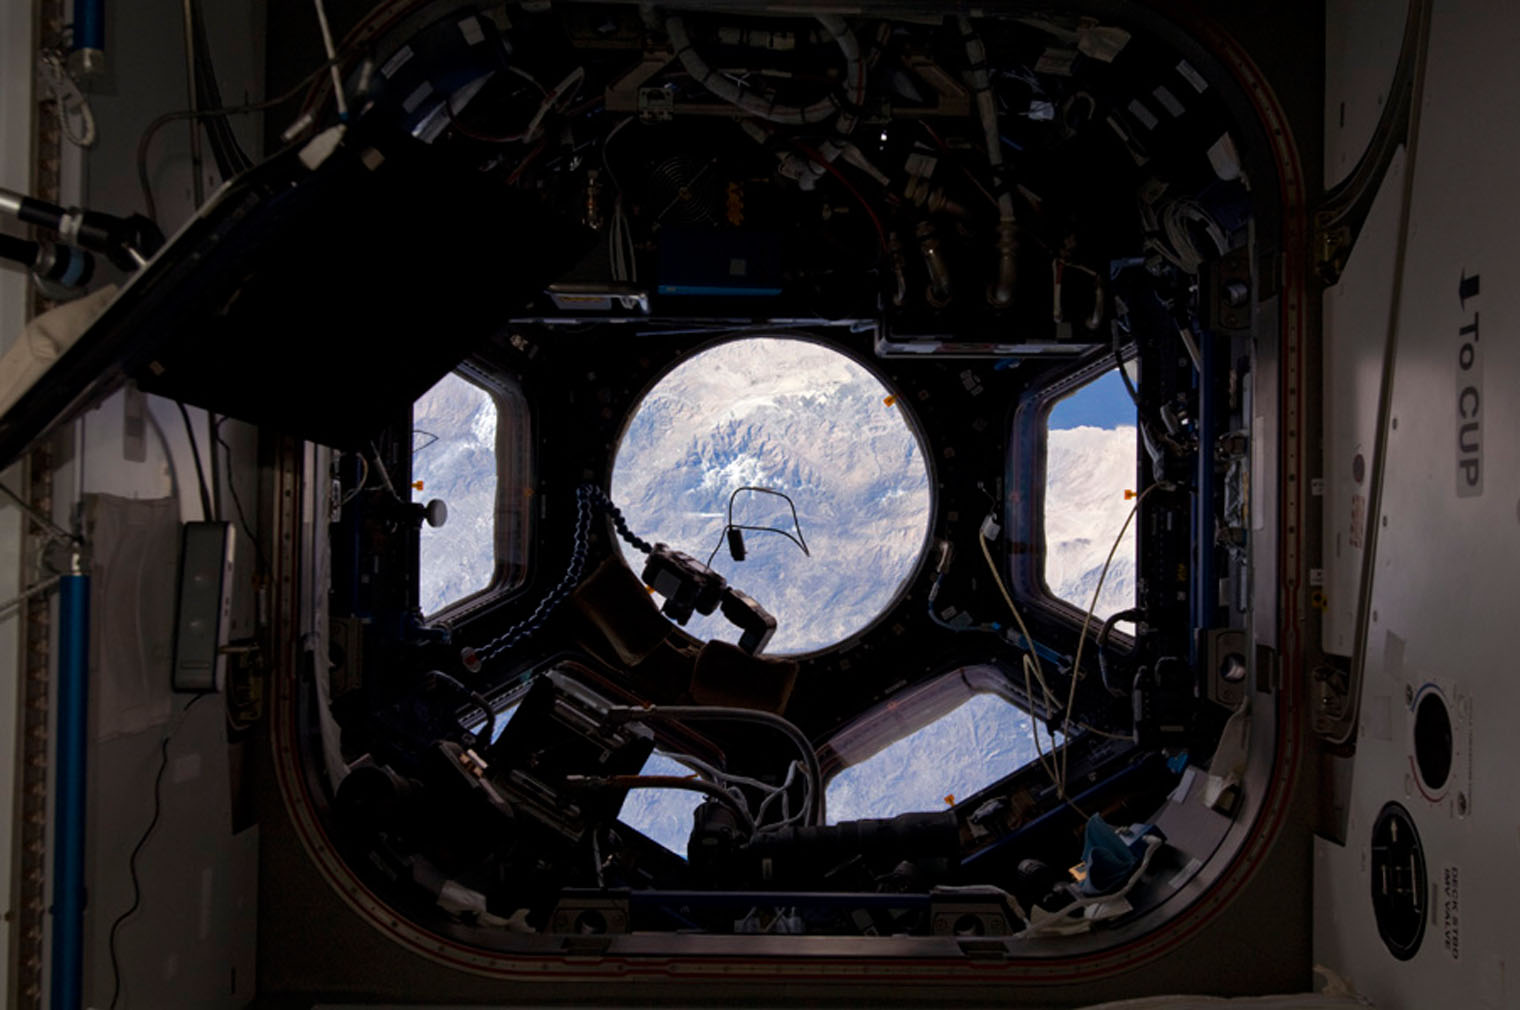 The Cupola view